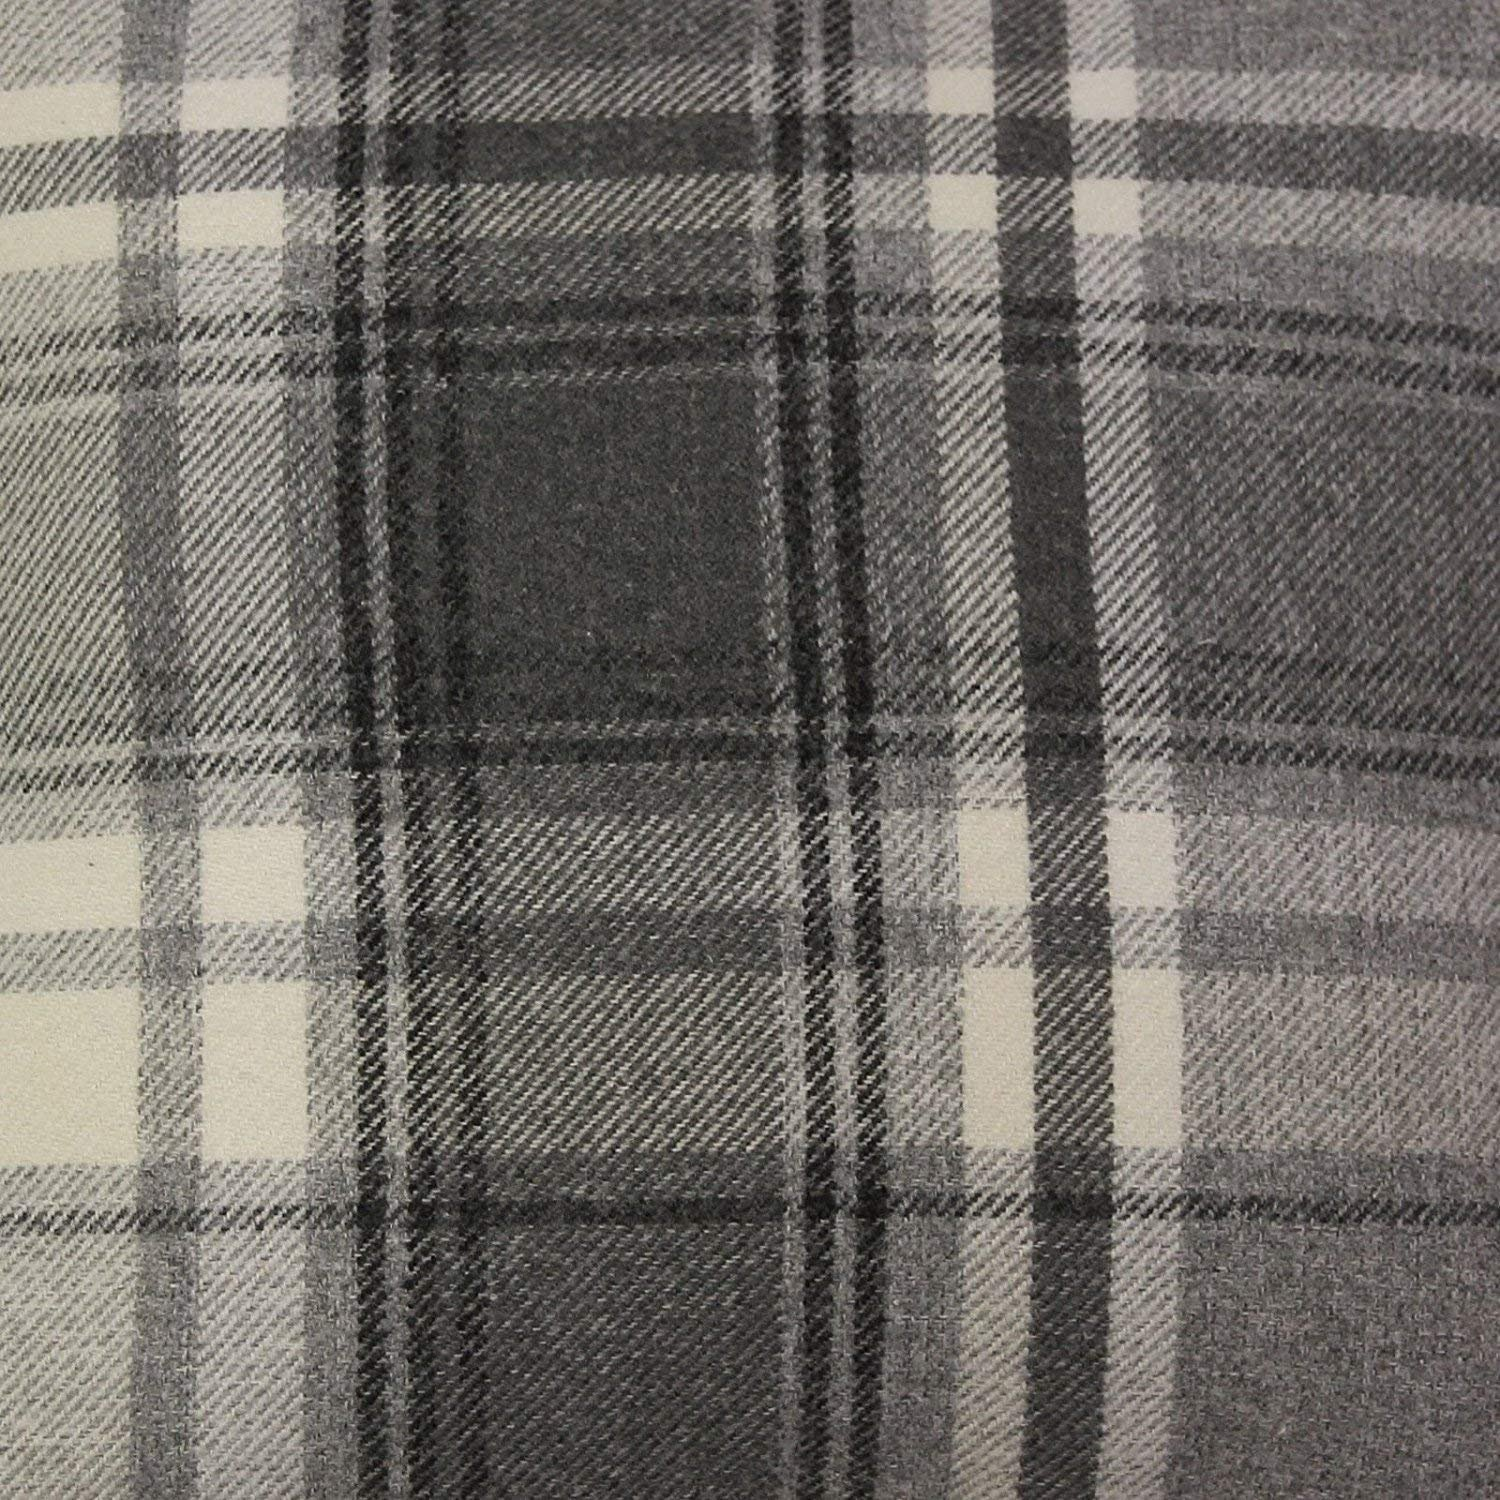 McAlister Textiles Heritage | Charcoal Grey Tartan Check Craft + Upholstery Material Cotton Blend Fabric Roll Art Supplies | Metre - 140cm Wide